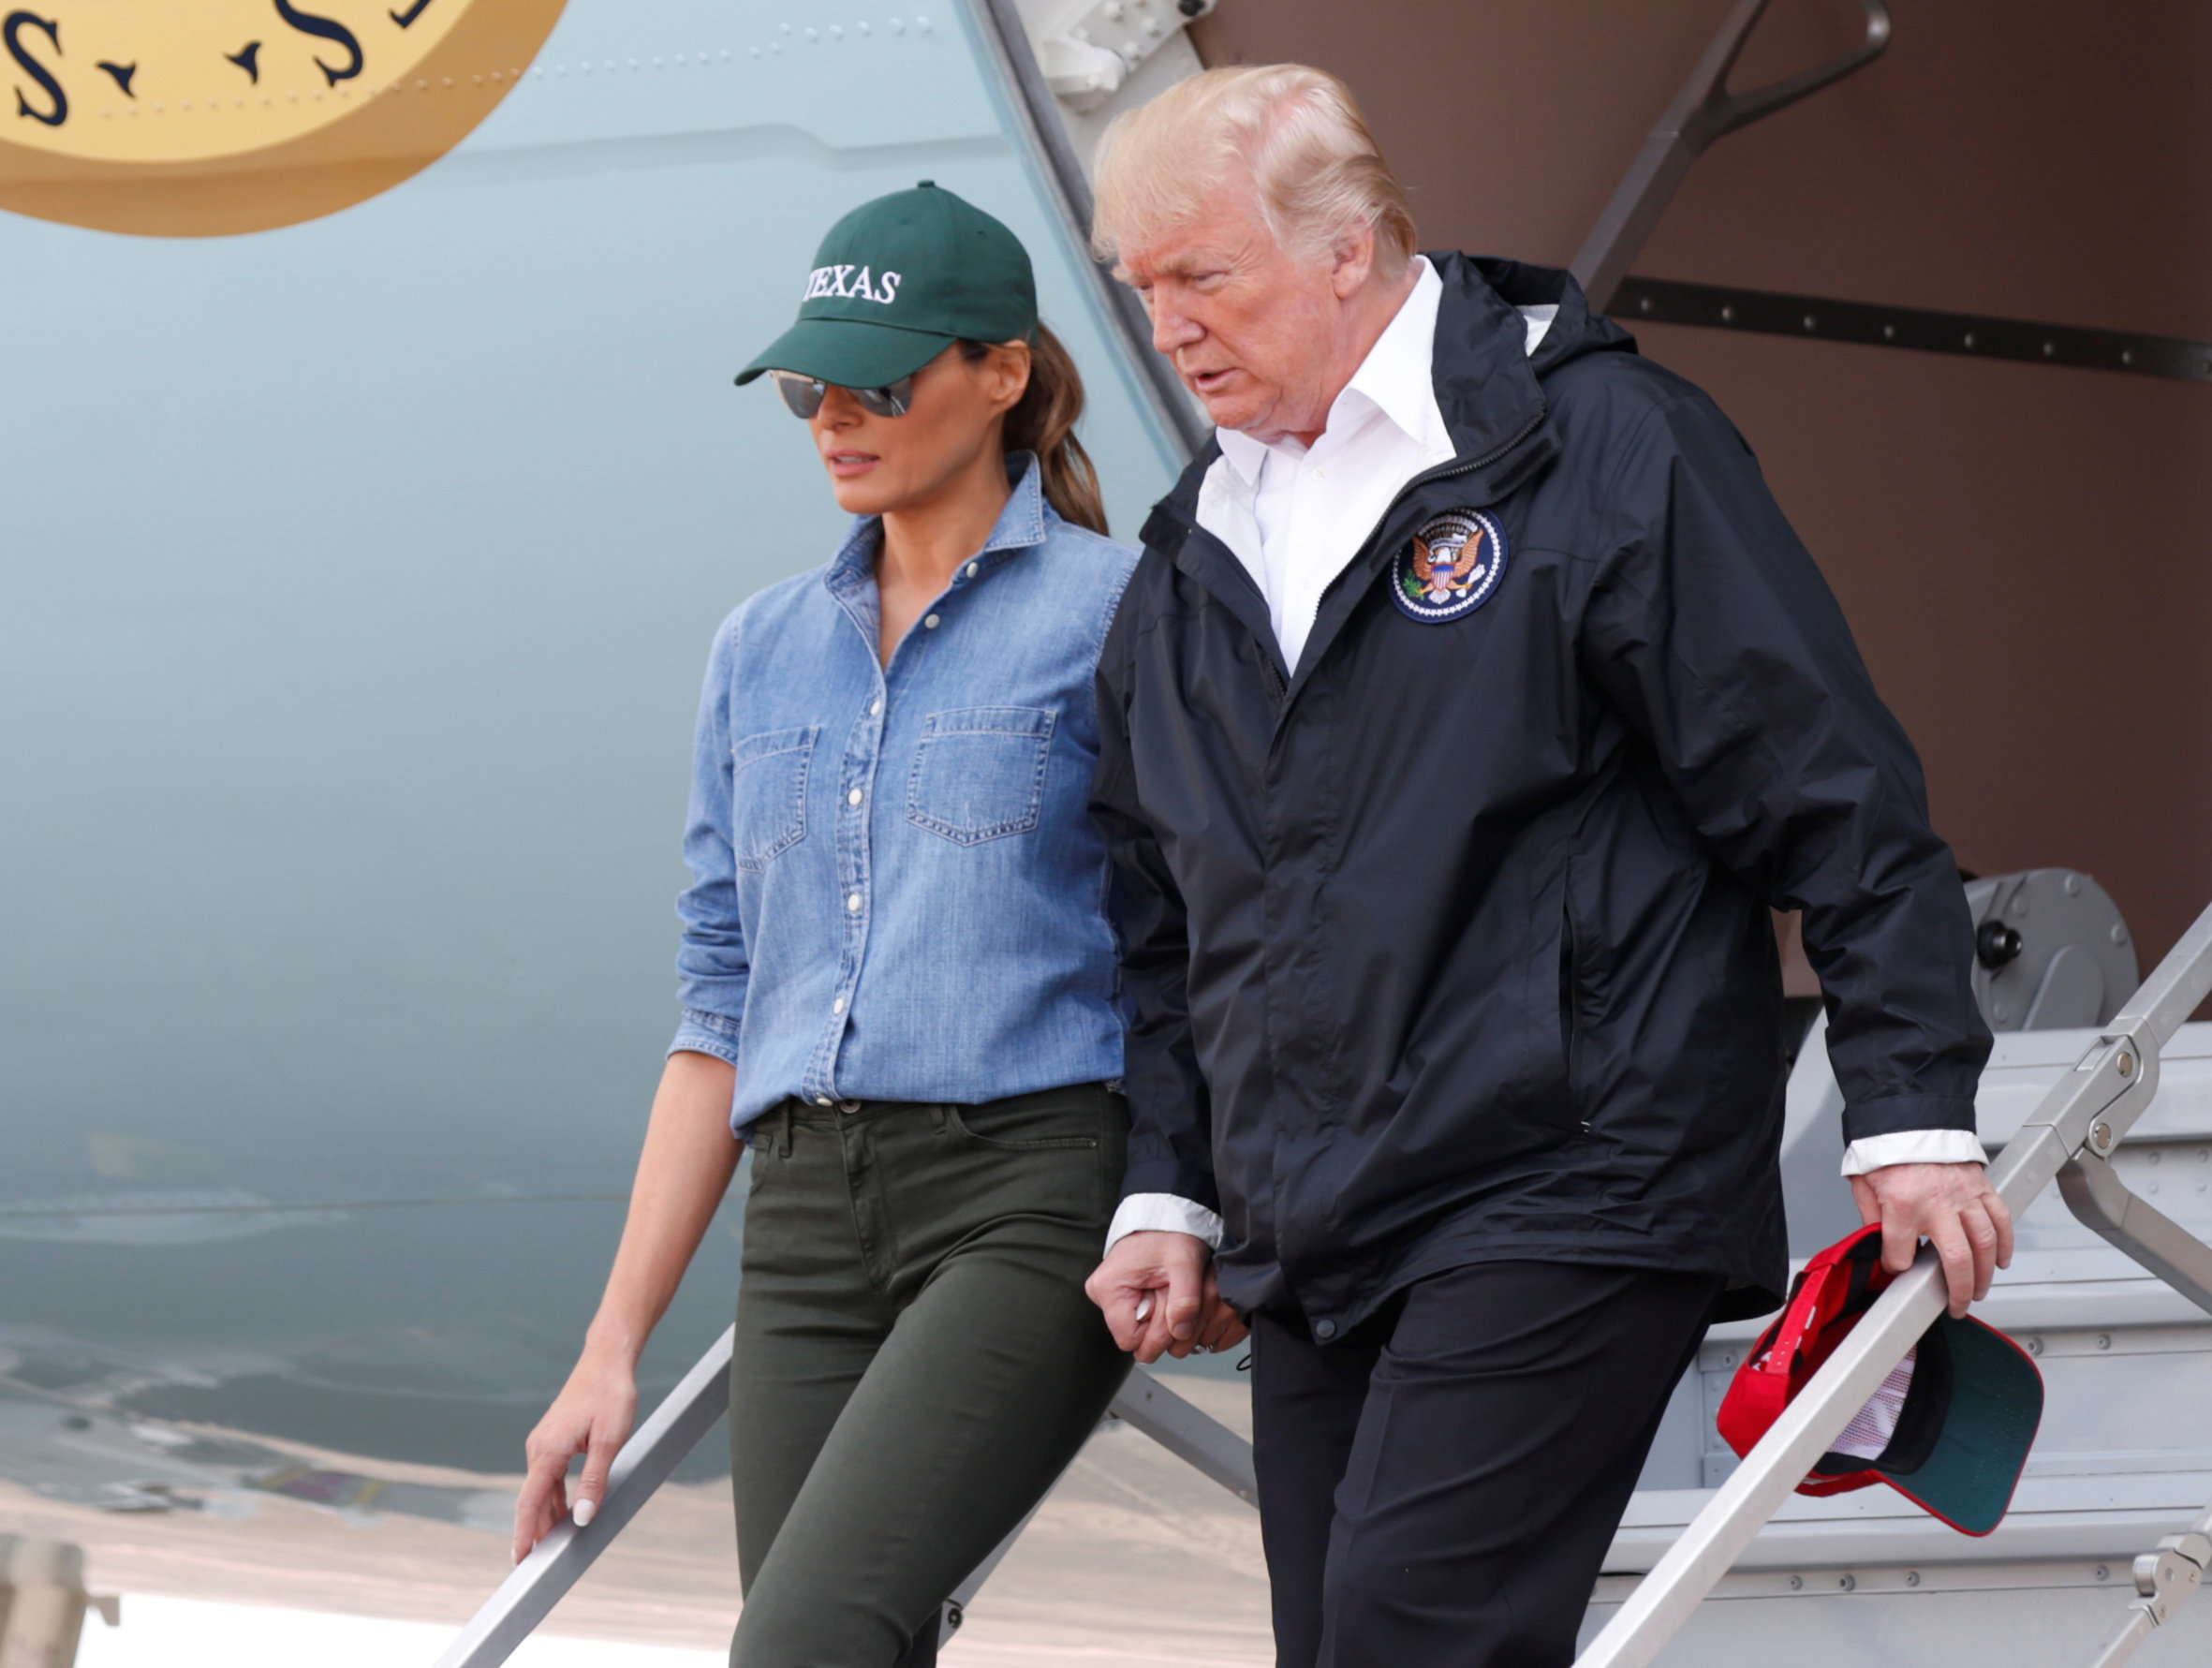 U.S. President Donald Trump and first lady Melania Trump deplane after arriving at Ellington Field to meet with flood survivors and volunteers who assisted in relief efforts in the aftermath of Hurricane Harvey, in Houston, Texas, U.S., September 2, 2017.   REUTERS/Kevin Lamarque